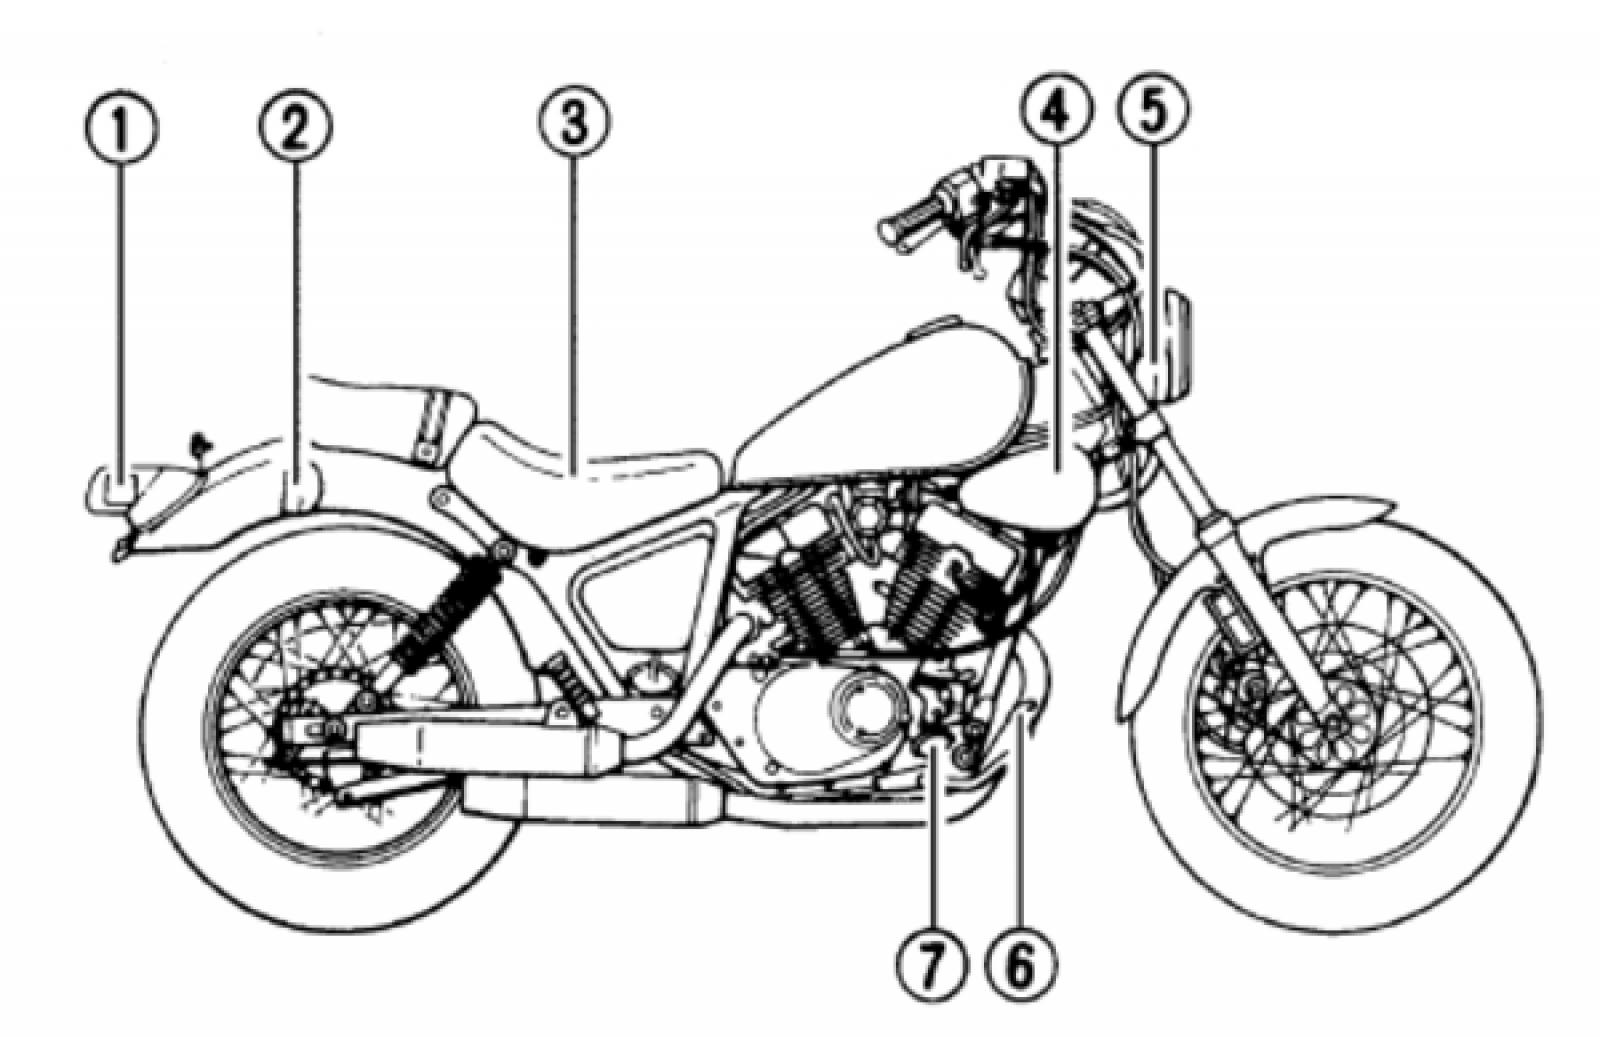 Yamaha Xv250 Virago Wiring Diagram Xv500k Color Schematic 1994 535 The Best